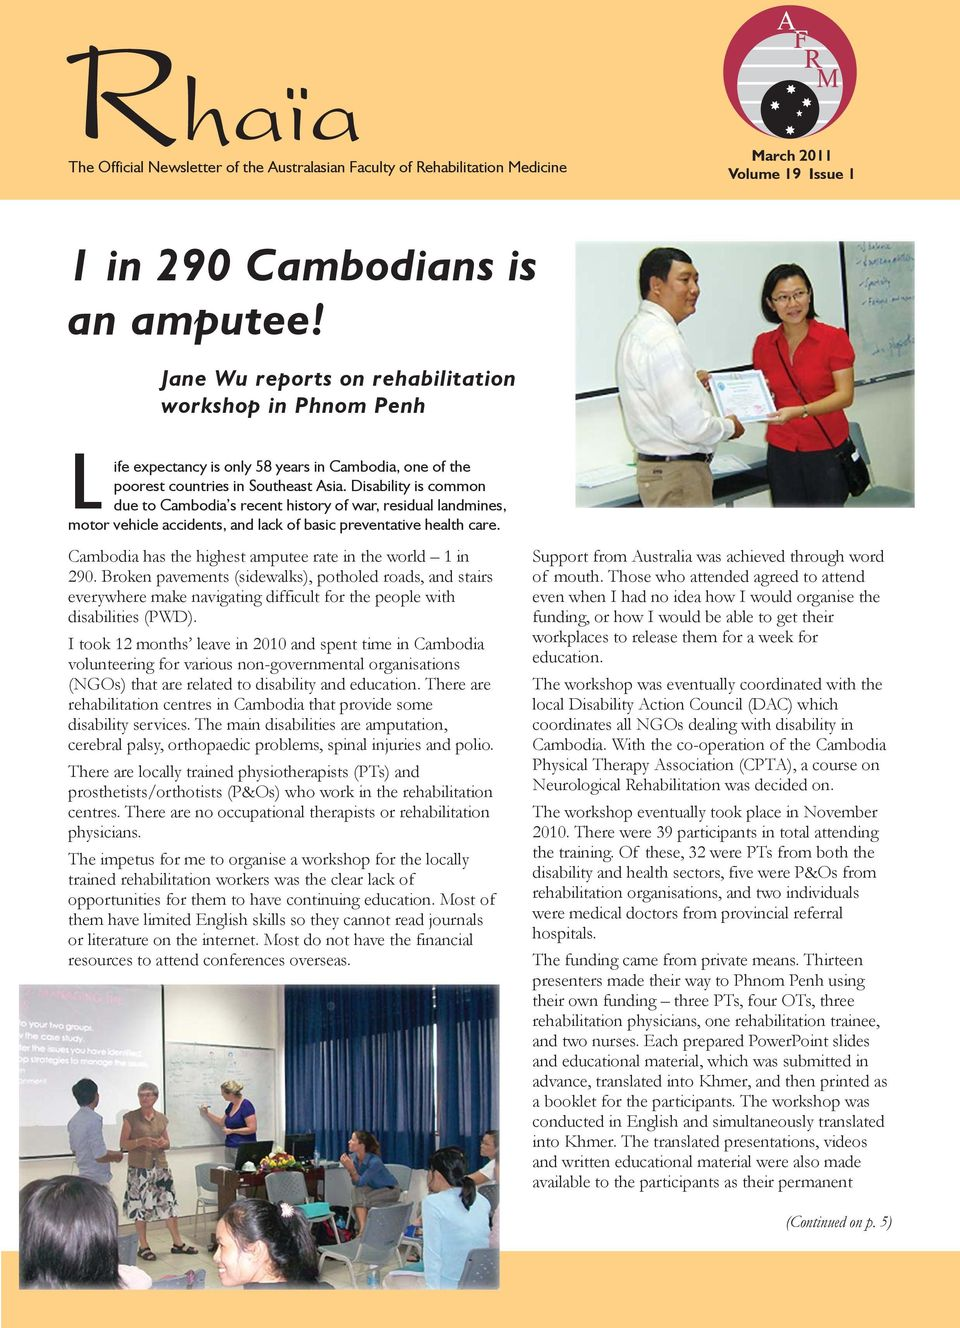 Disability is common due to Cambodia s recent history of war, residual landmines, motor vehicle accidents, and lack of basic preventative health care.